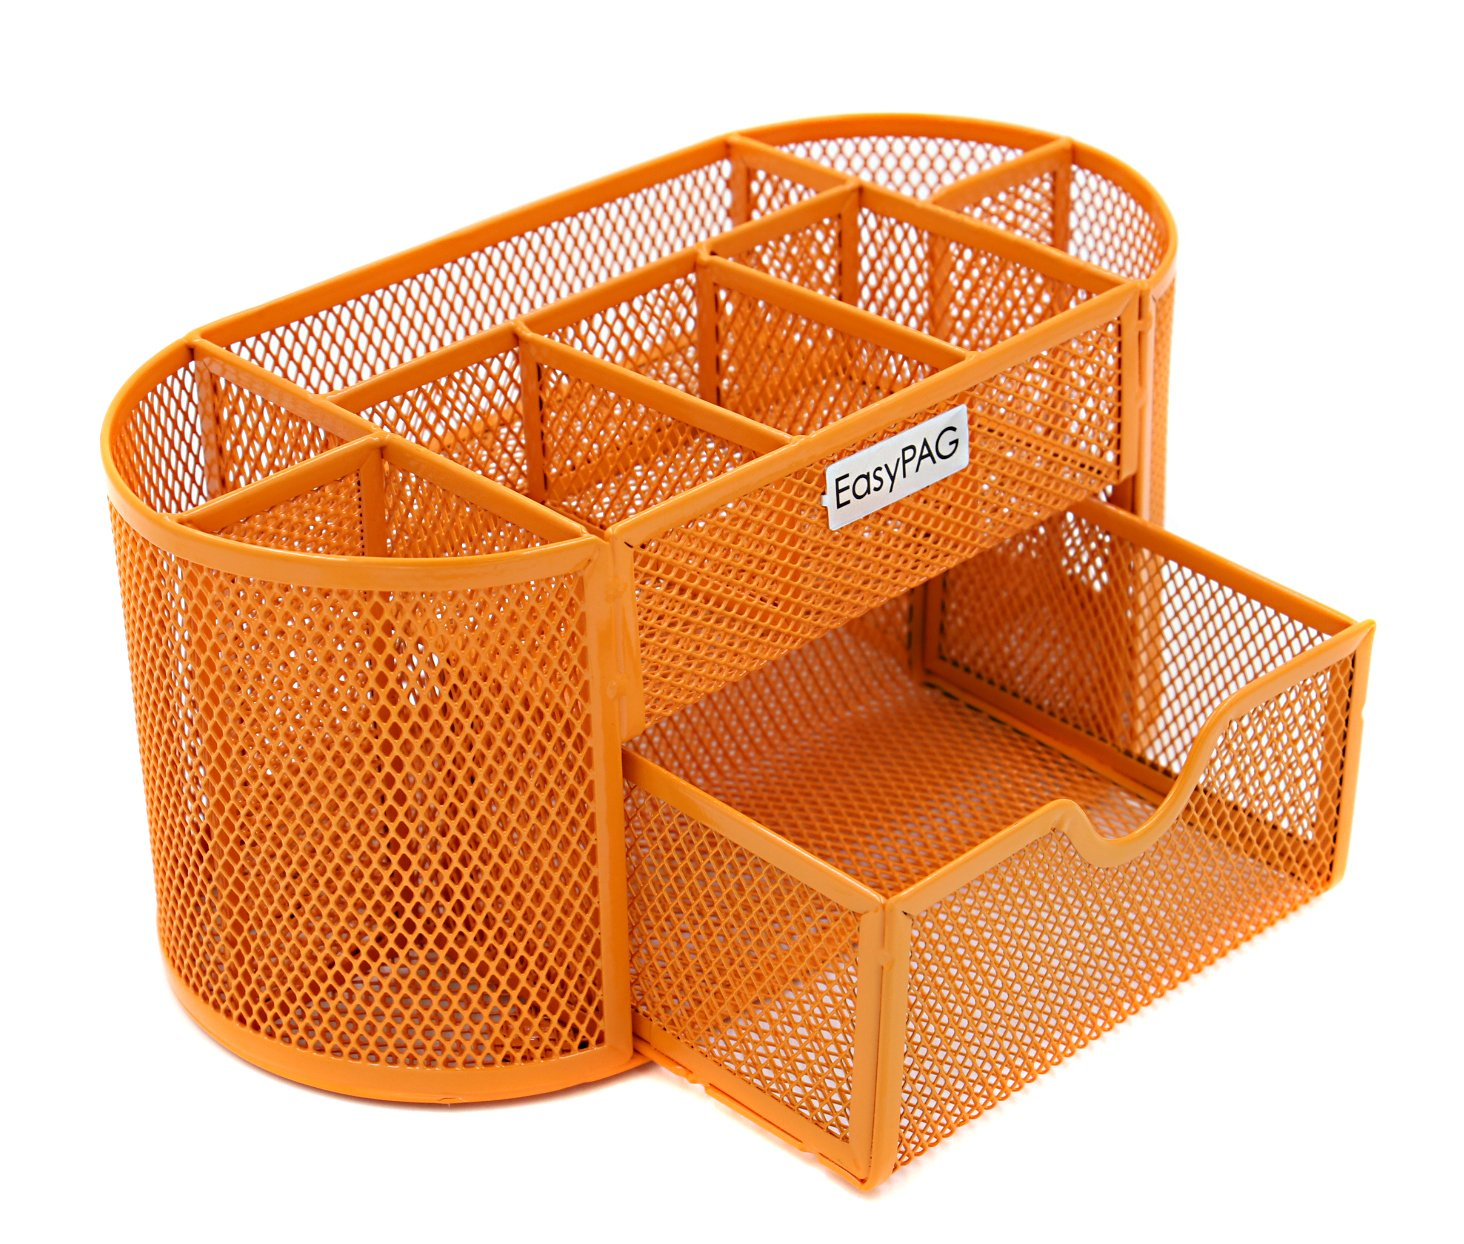 EasyPAG Desk Organizer 9 Components Mesh Office Desktop Office Supplies Set with Drawer,Orange